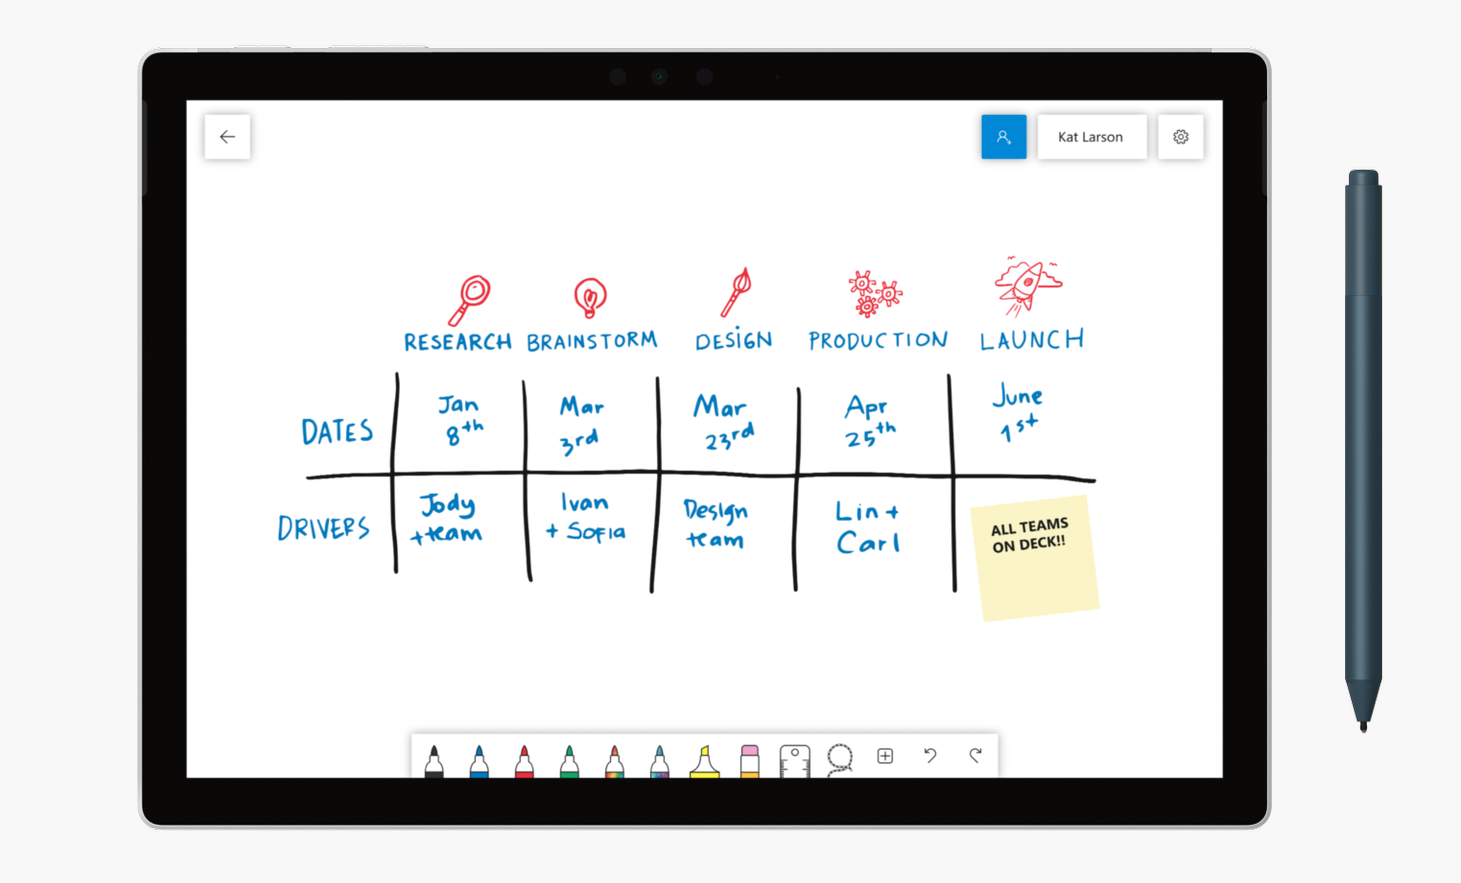 techcrunch.com - Brian Heater - Microsoft Whiteboard is available to all on Windows, iOS version coming soon